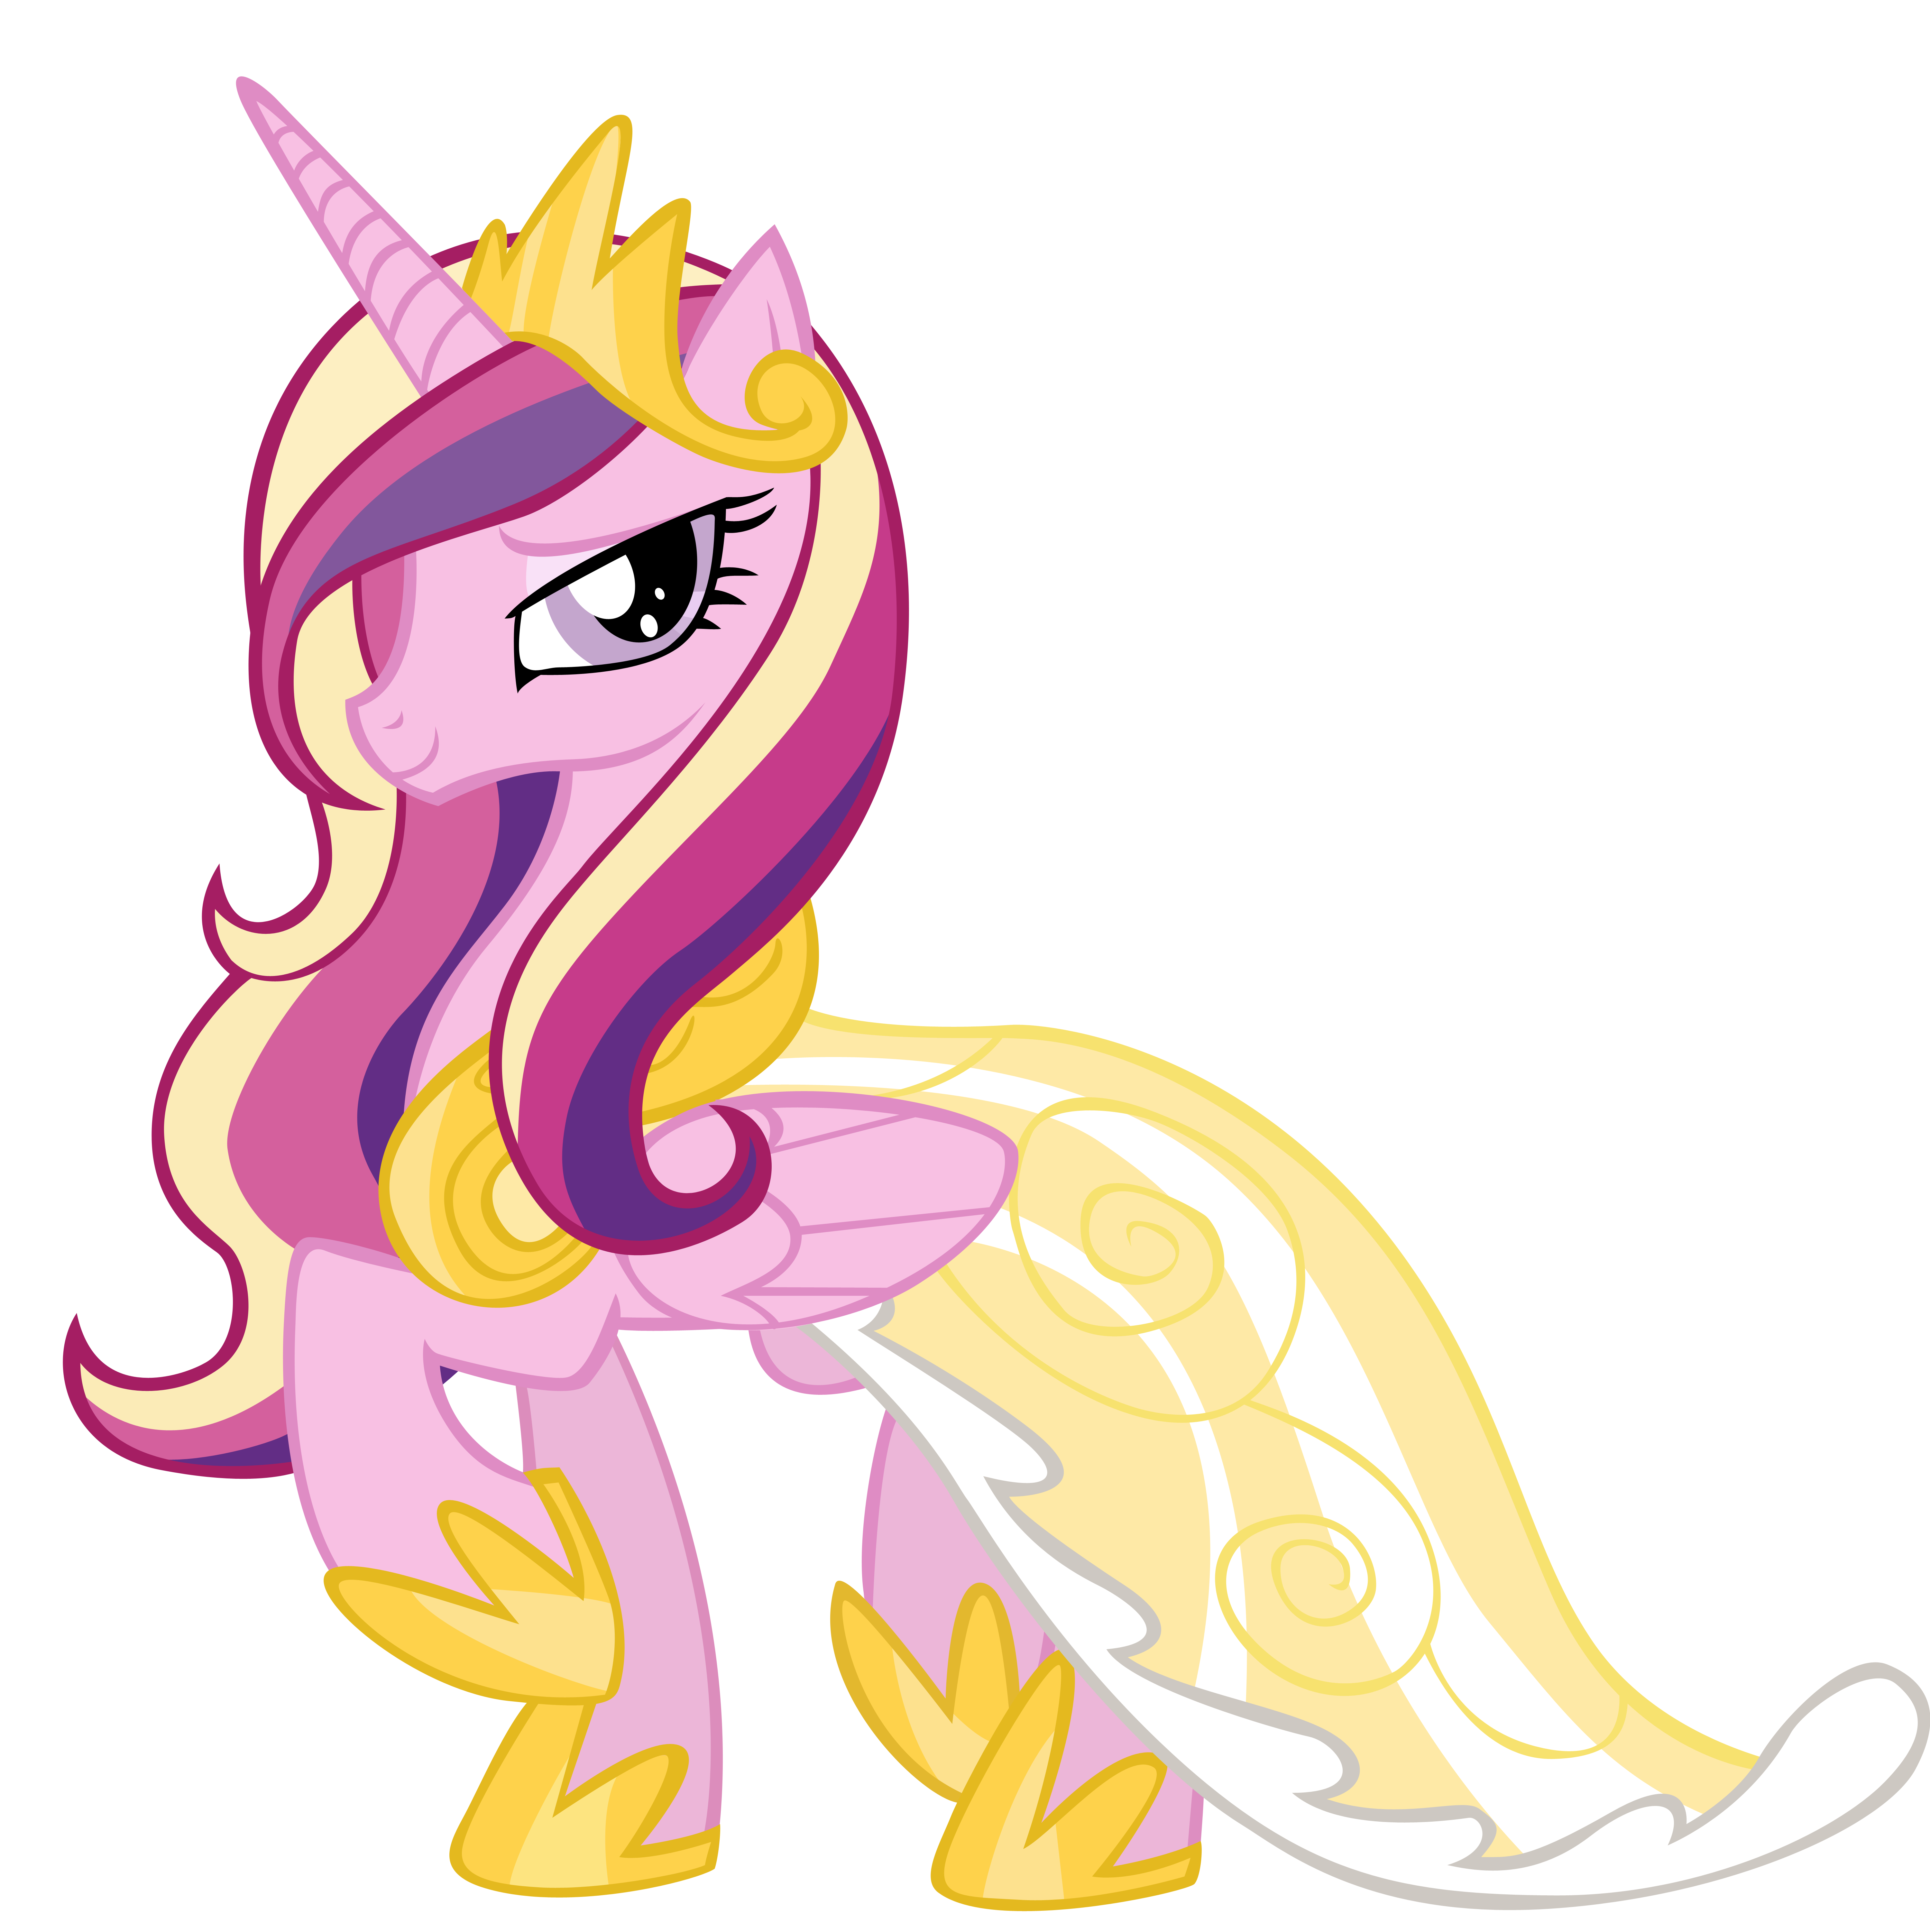 Is It Just Me By Dustysculptures On Deviantart Images Of Princess Cadence